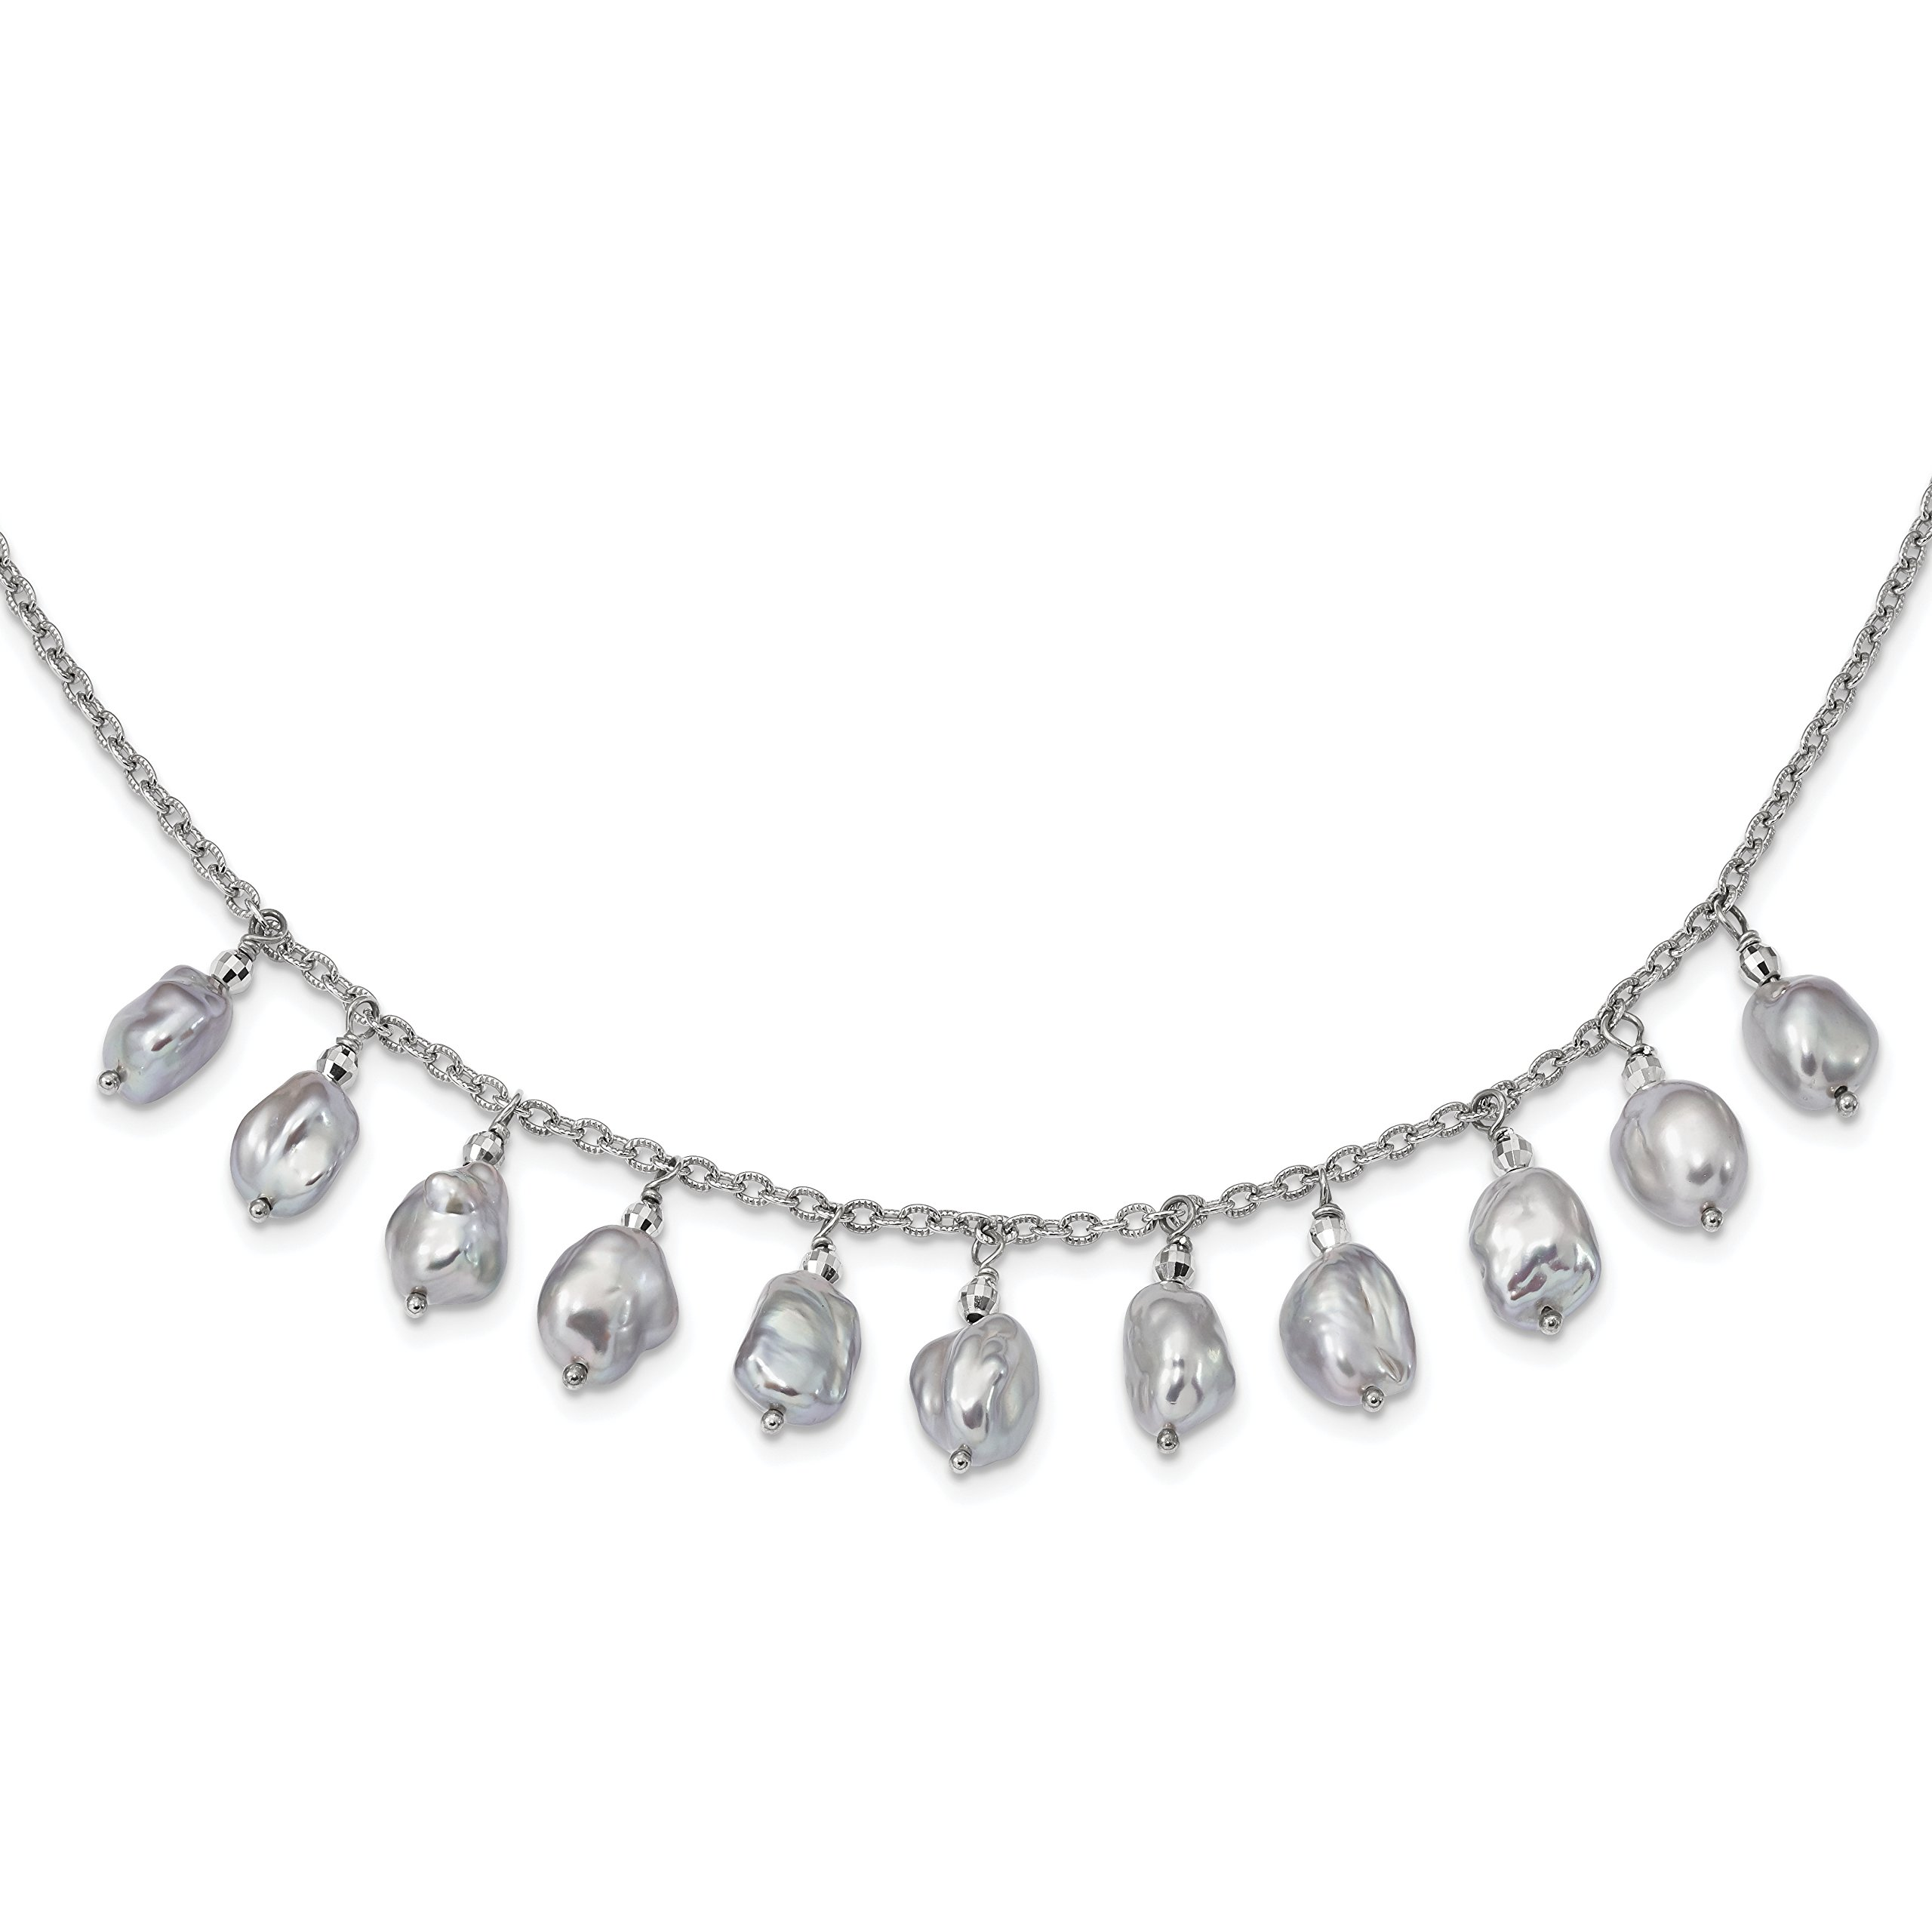 ICE CARATS 925 Sterling Silver Plate 7 9mm Grey Baroque Freshwater Cultured Pearl 2 Inch Extension Necklac Fine Jewelry Gift For Women Heart by ICE CARATS (Image #1)